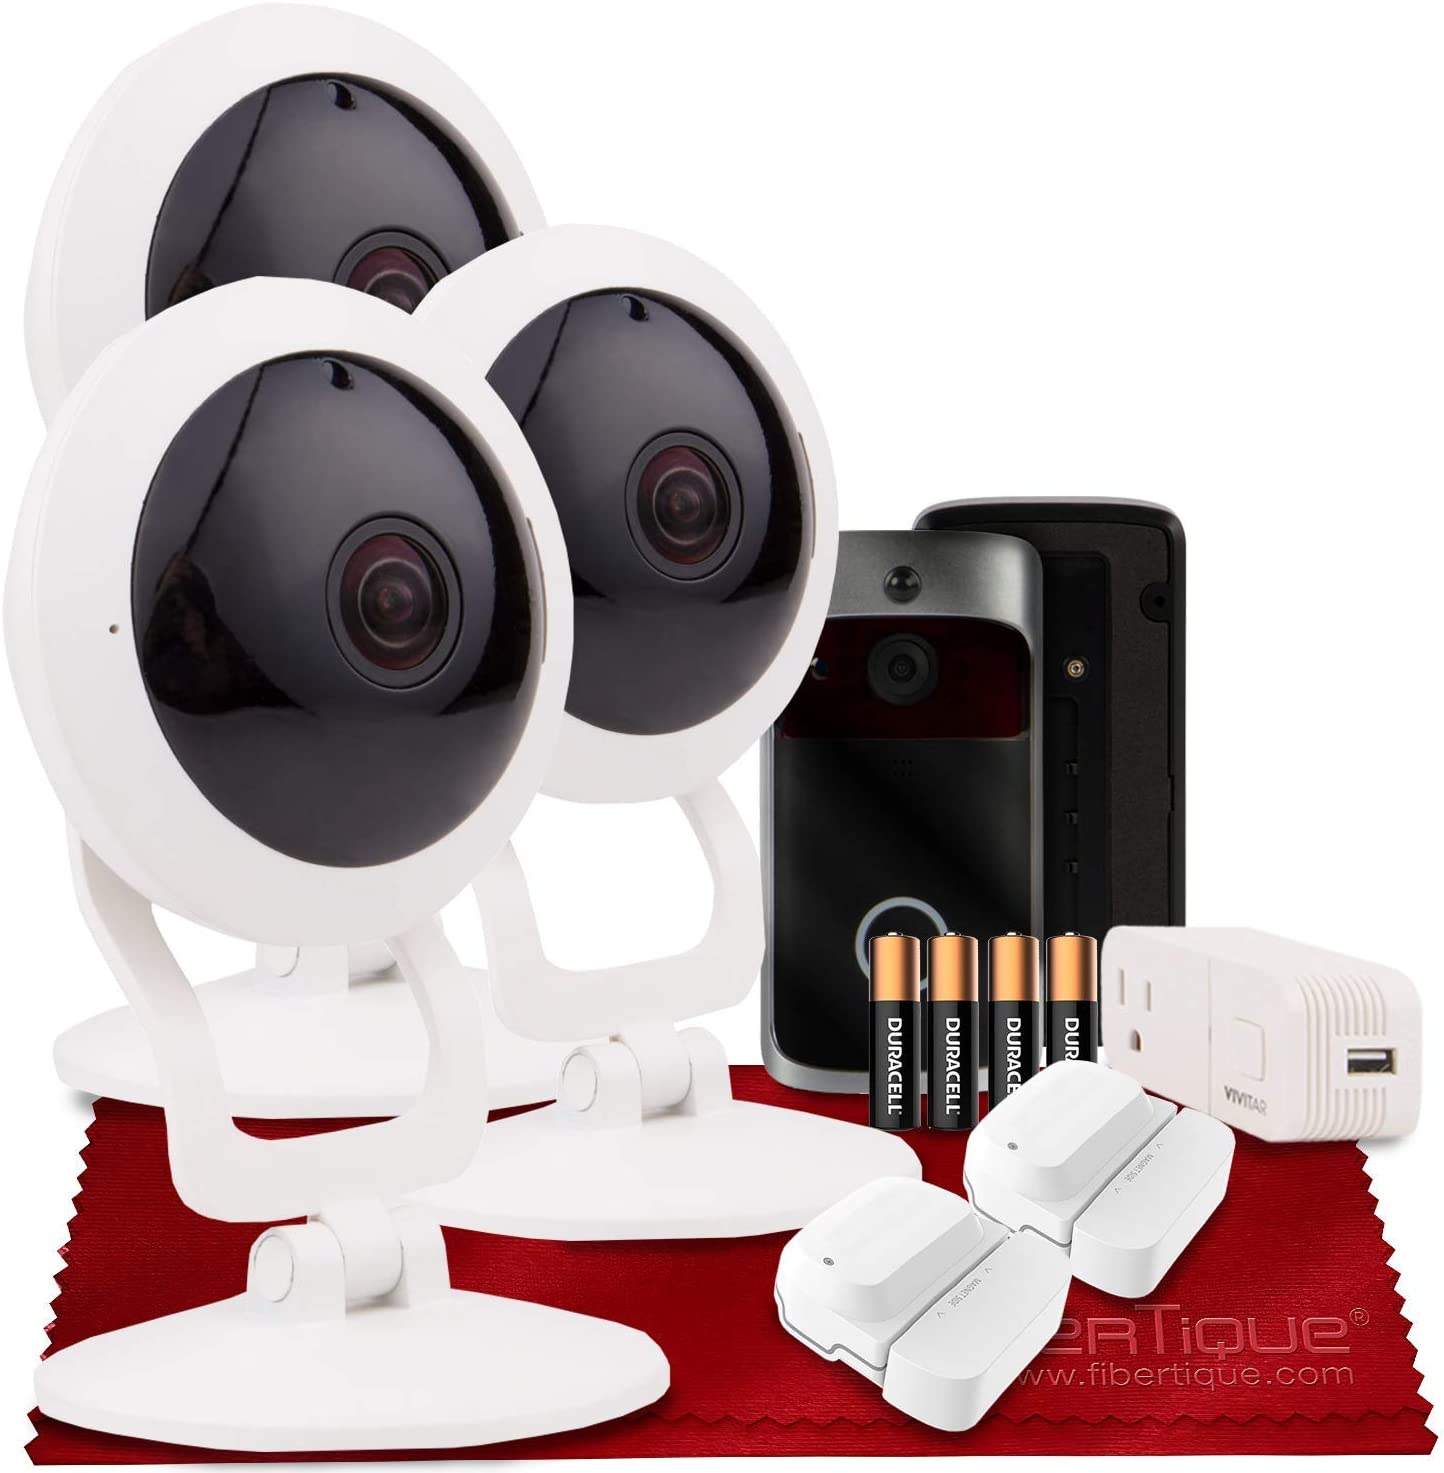 Vivitar IPC117 360 Wide Angle 1080p HD Wi-Fi Smart Home Security Camera W/ iOS/Android App (x3) + Vivitar Wireless Doorbell, WiFi Door Sensor (x2), Mini WiFi Outlet & AAA Batteries (x2)